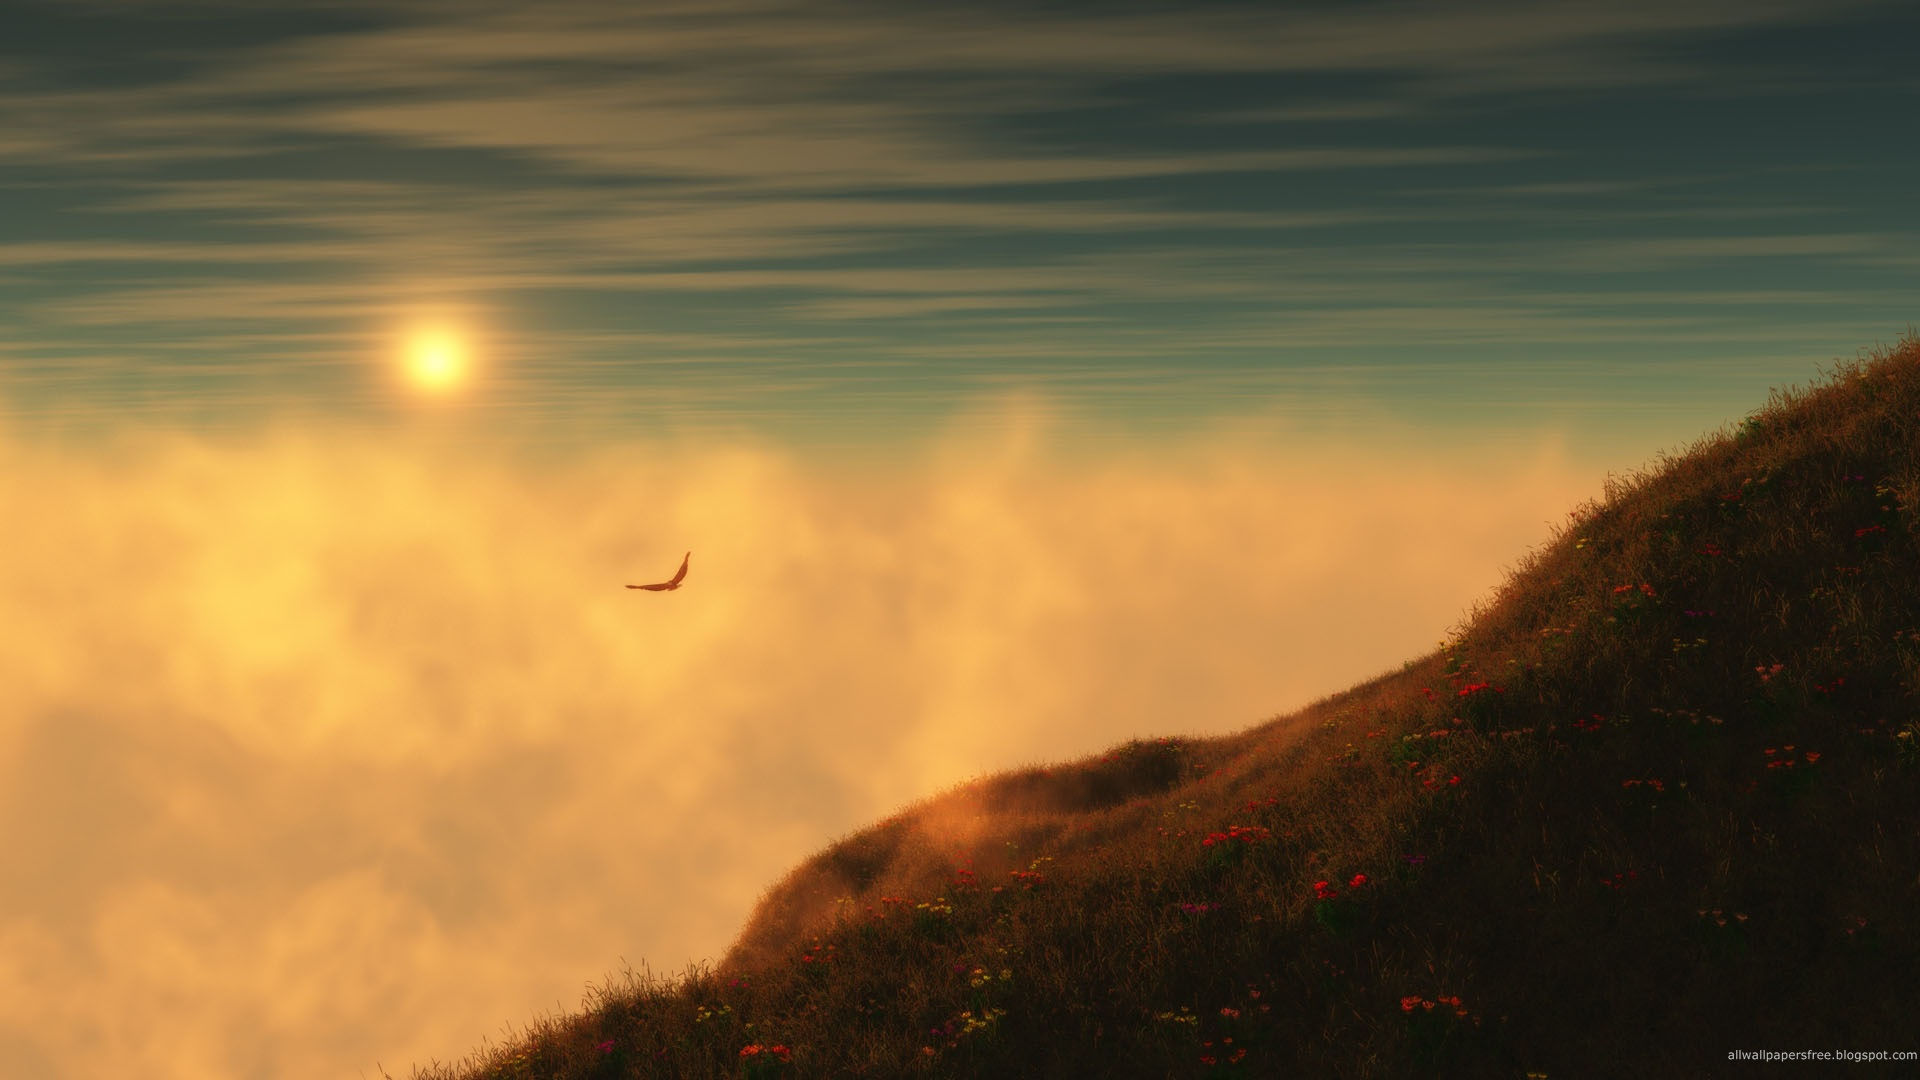 click to free download the wallpaper--Free Download Natural Scenery Picture - A Flying Bird in the Misty Sky, Red Flowers on Hillside, Looking Great 1920X1080 free wallpaper download